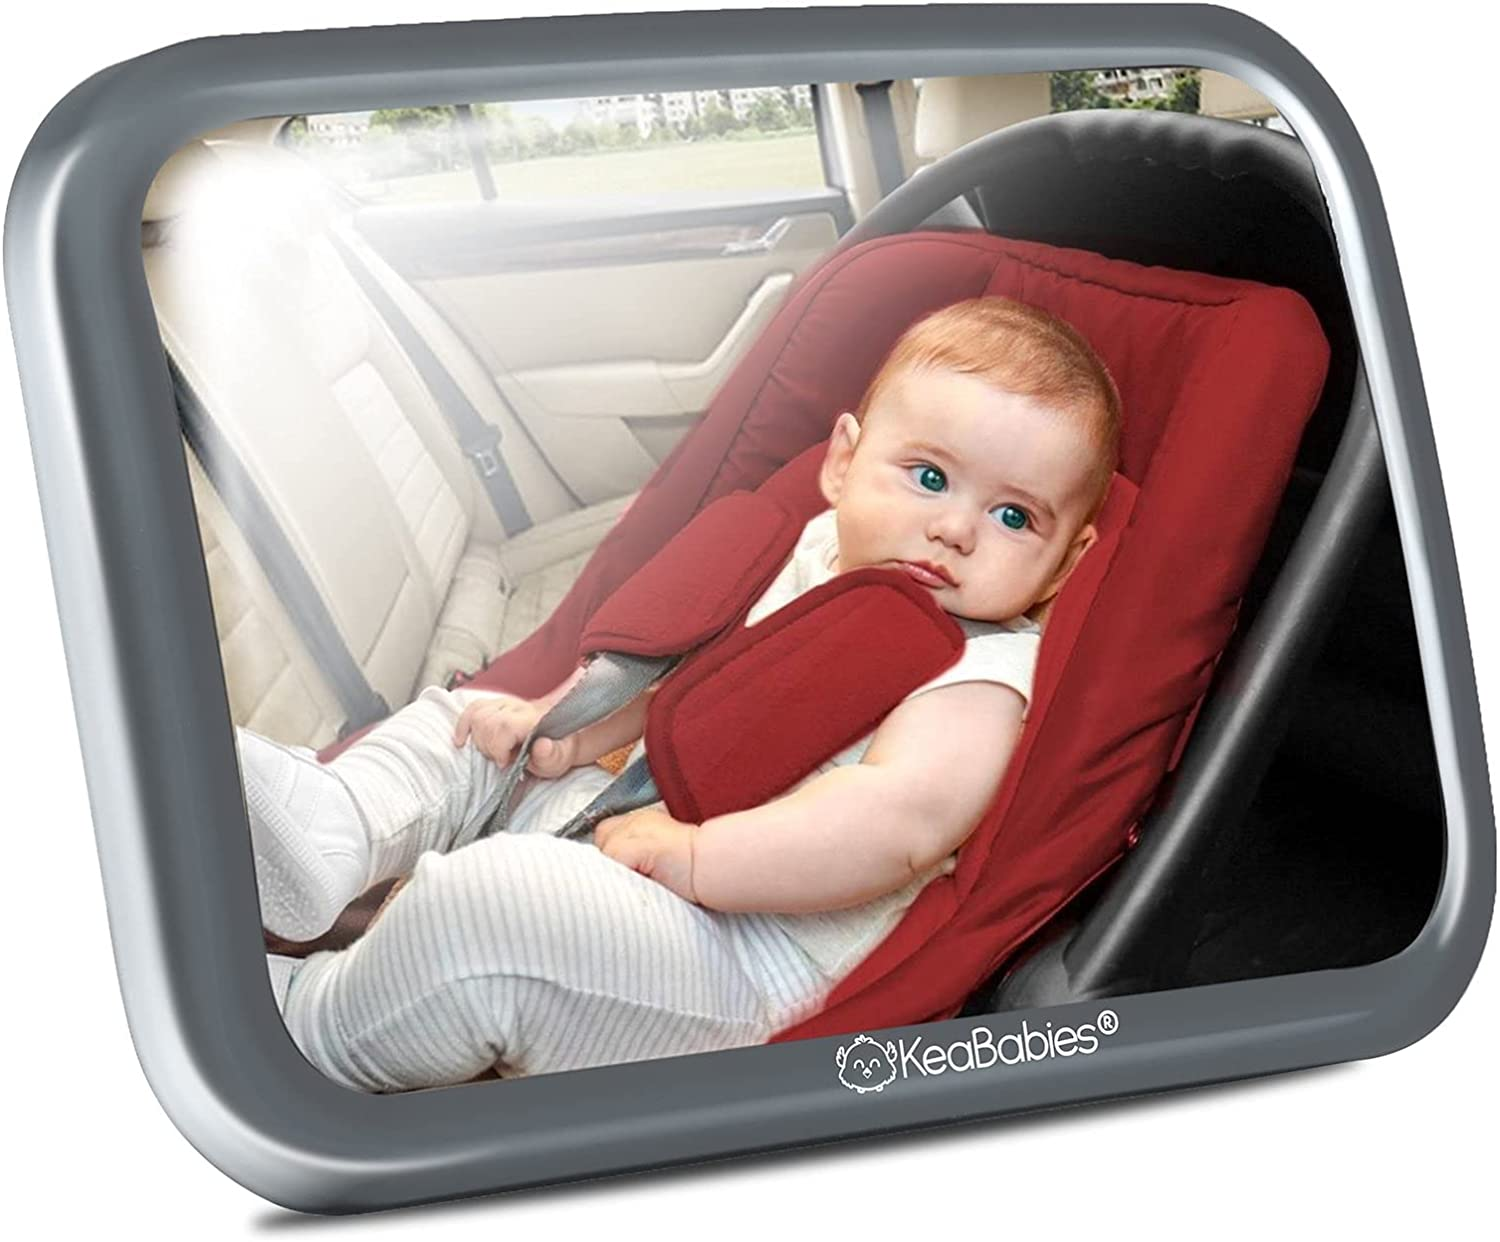 Large Shatterproof Baby Car Mirror - Safety Car Seat Mirror for Rear Facing Infant - Wide Shatterproof KeaBabies Car Baby Mirror - Carseat Mirrors - Fully Assembled Baby Car Mirror (Sleek Gray)